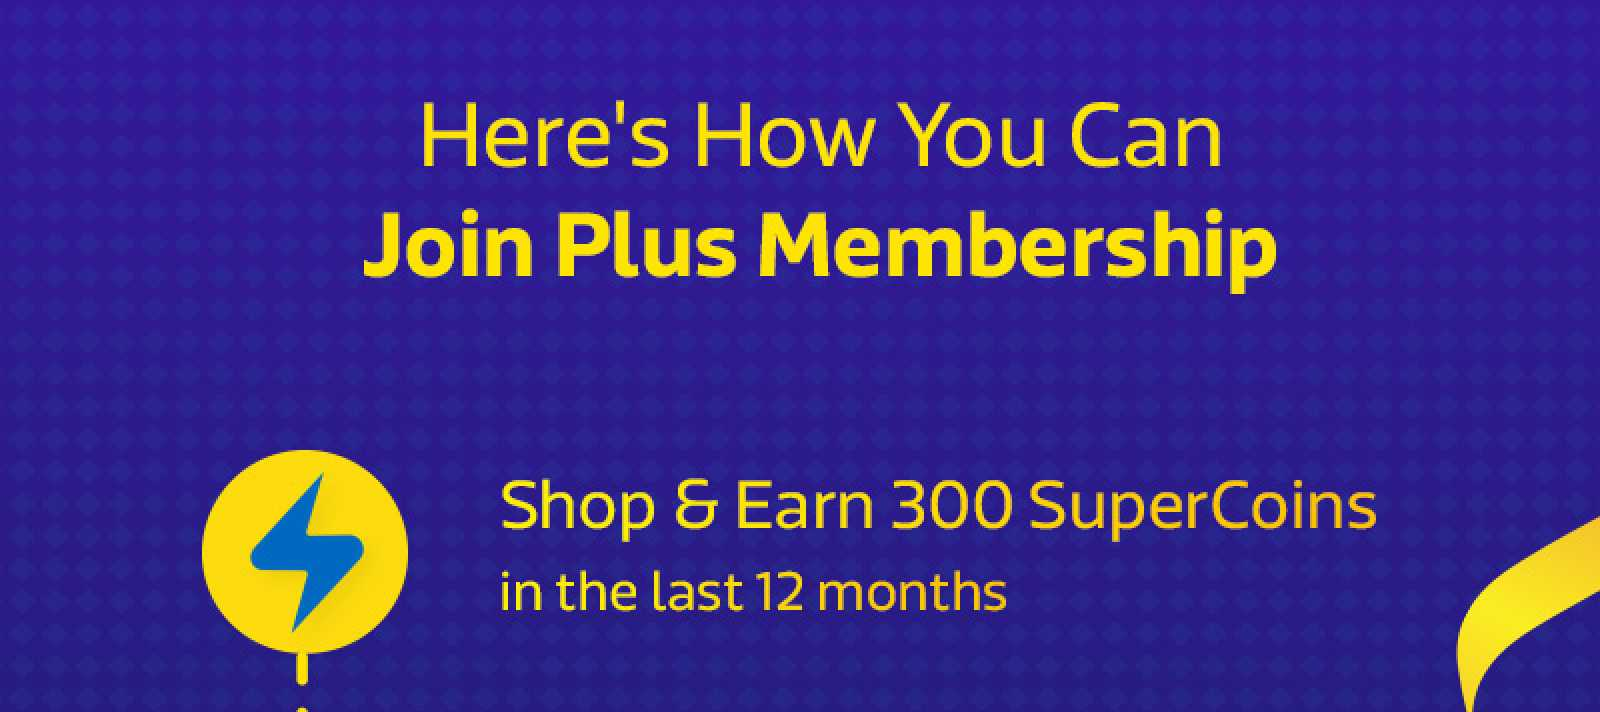 Flipkart Plus – The Ultimate Rewards Program for Flipkart Customers